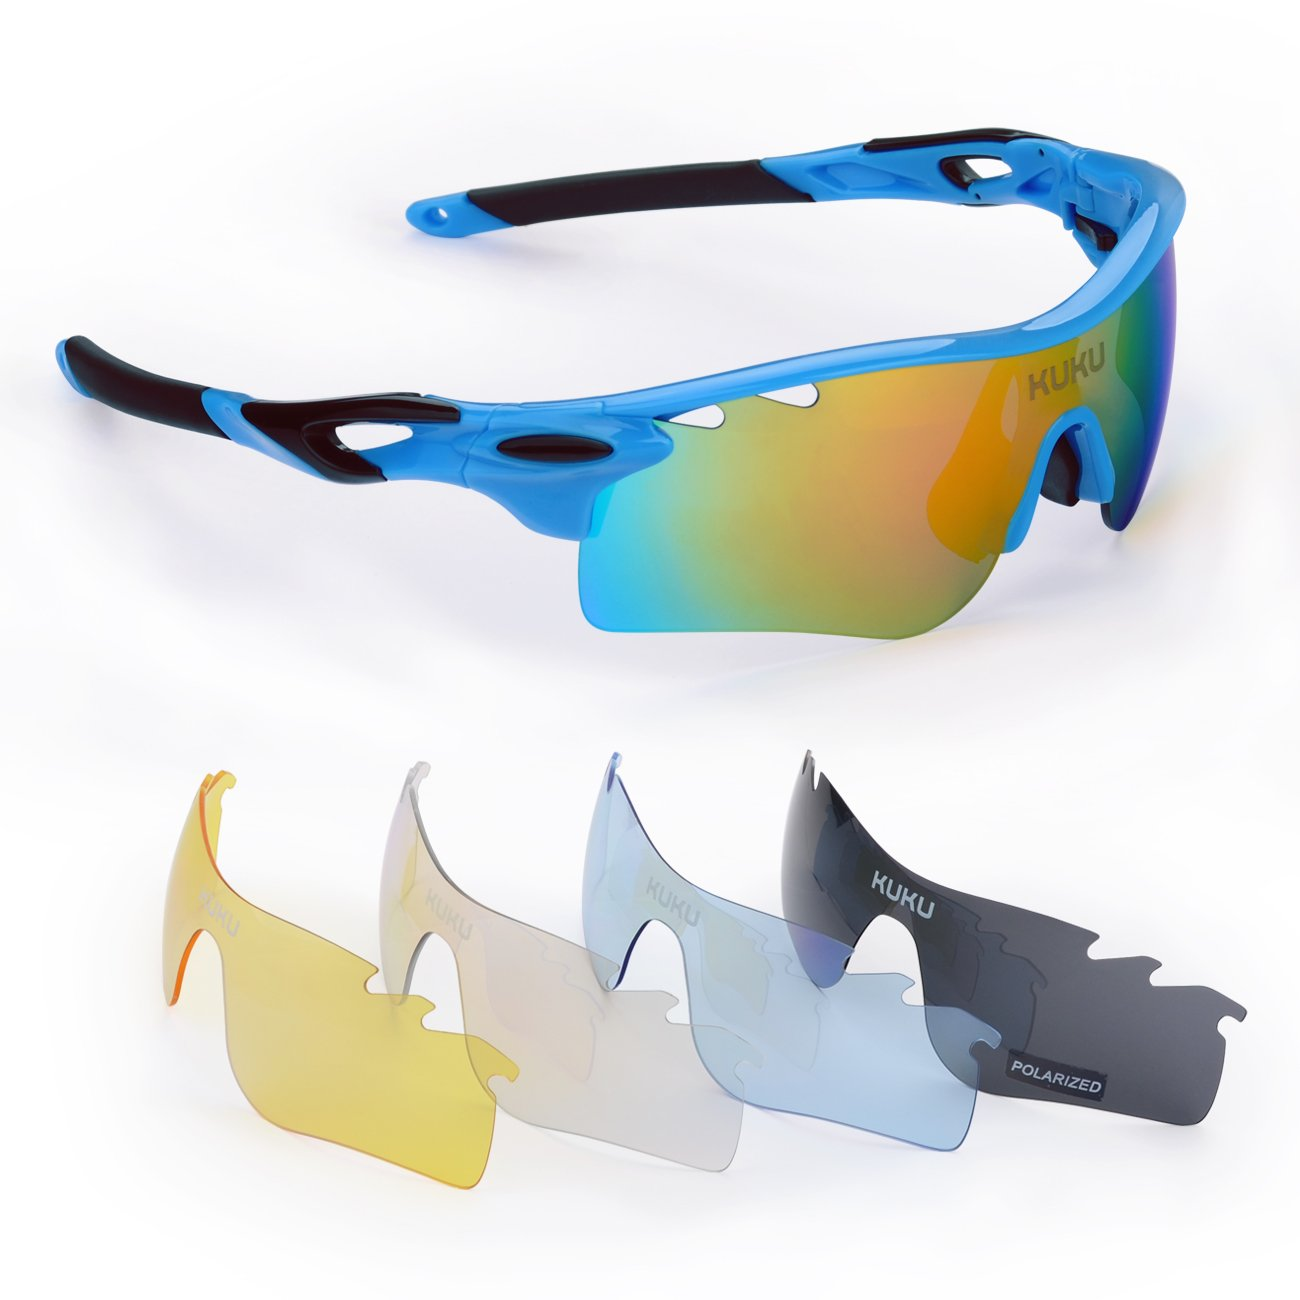 a1c2a0cf63b After long discussion we decided these sunglasses are the best deal  currently available. The FiveBox Polarized UV Protection Sport Glasses  protect